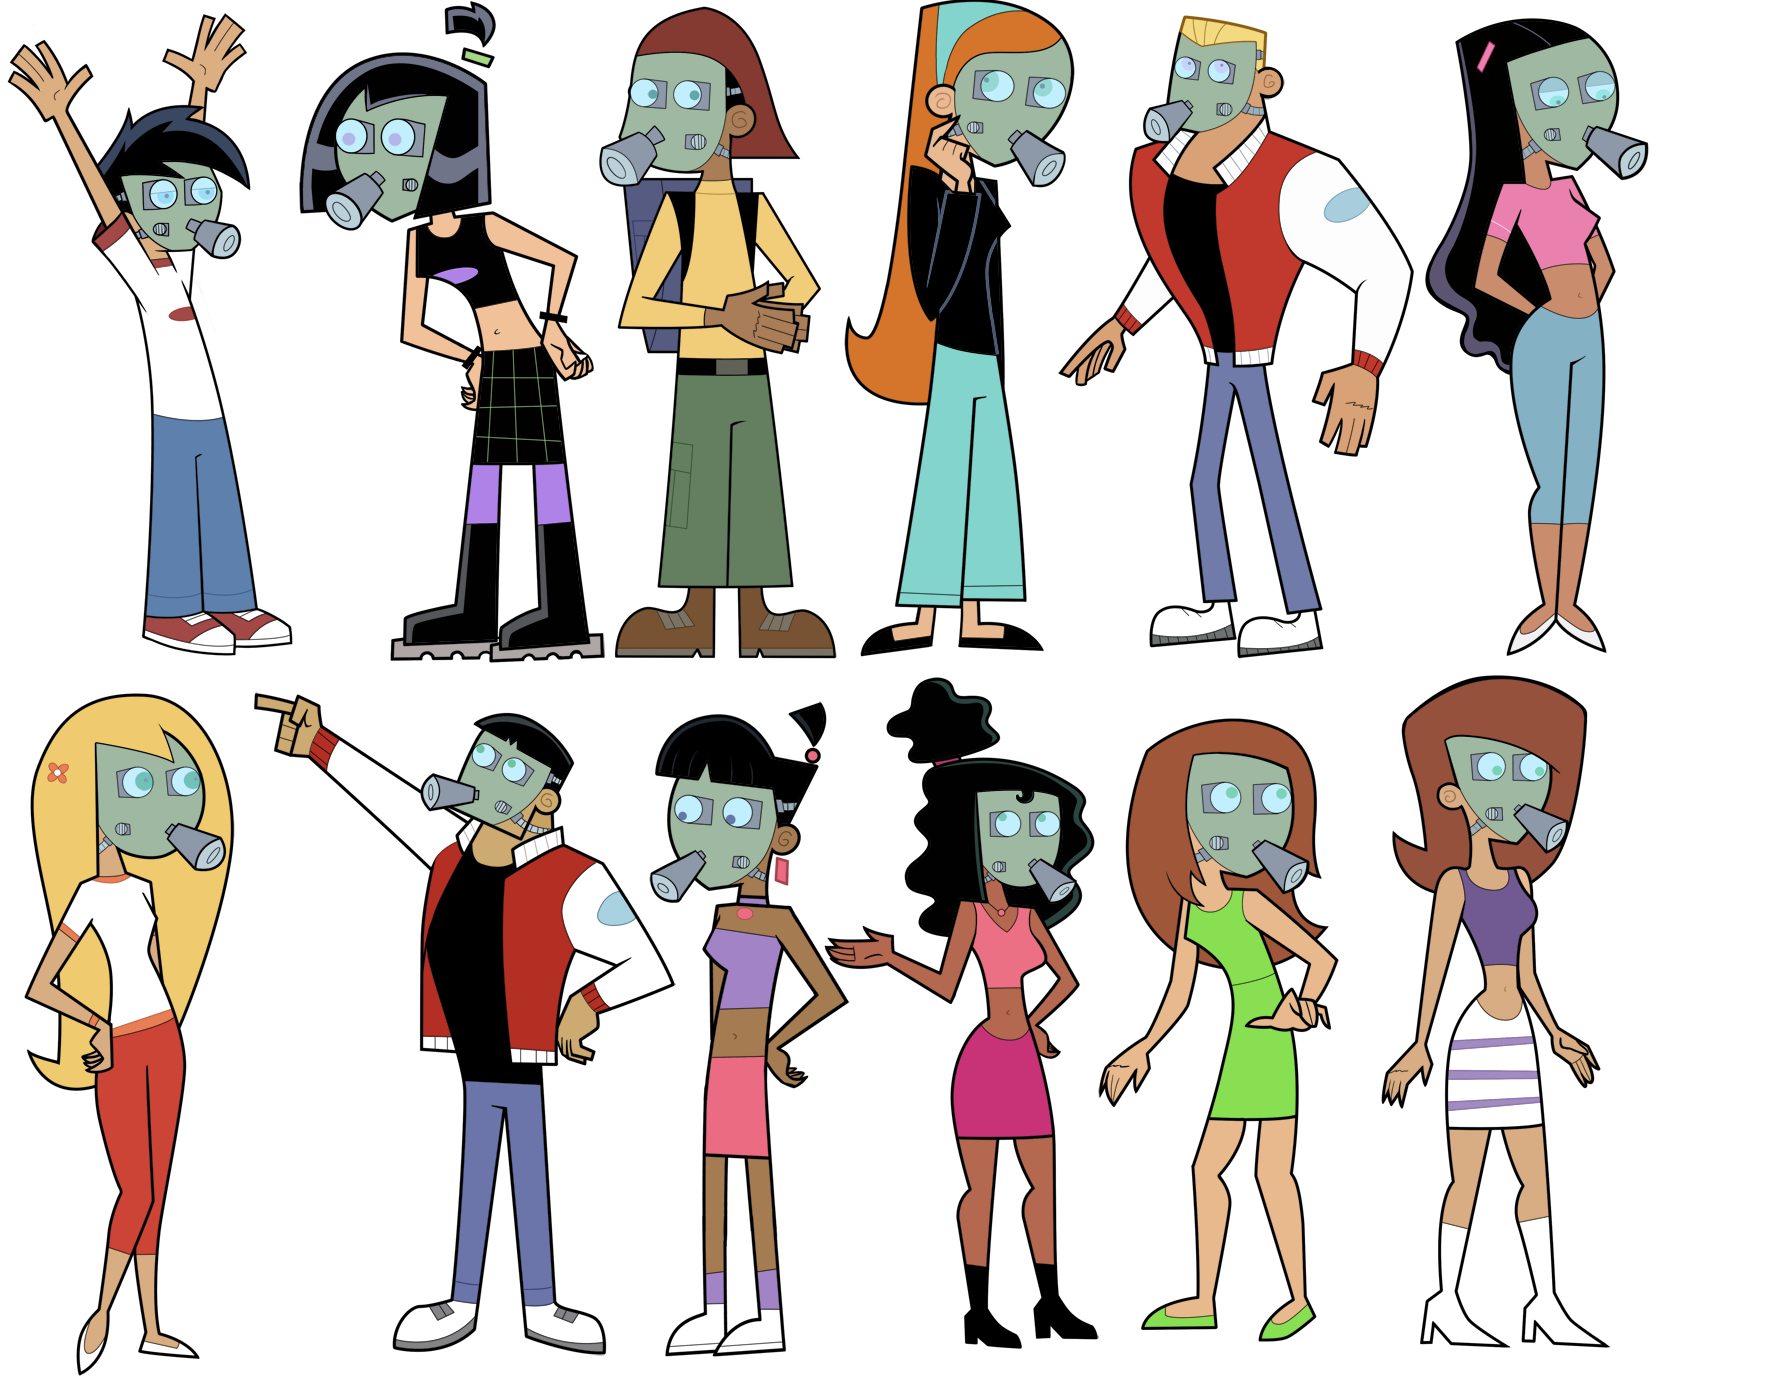 Image Danny Phantom Characters In Gas Maskspng Idea